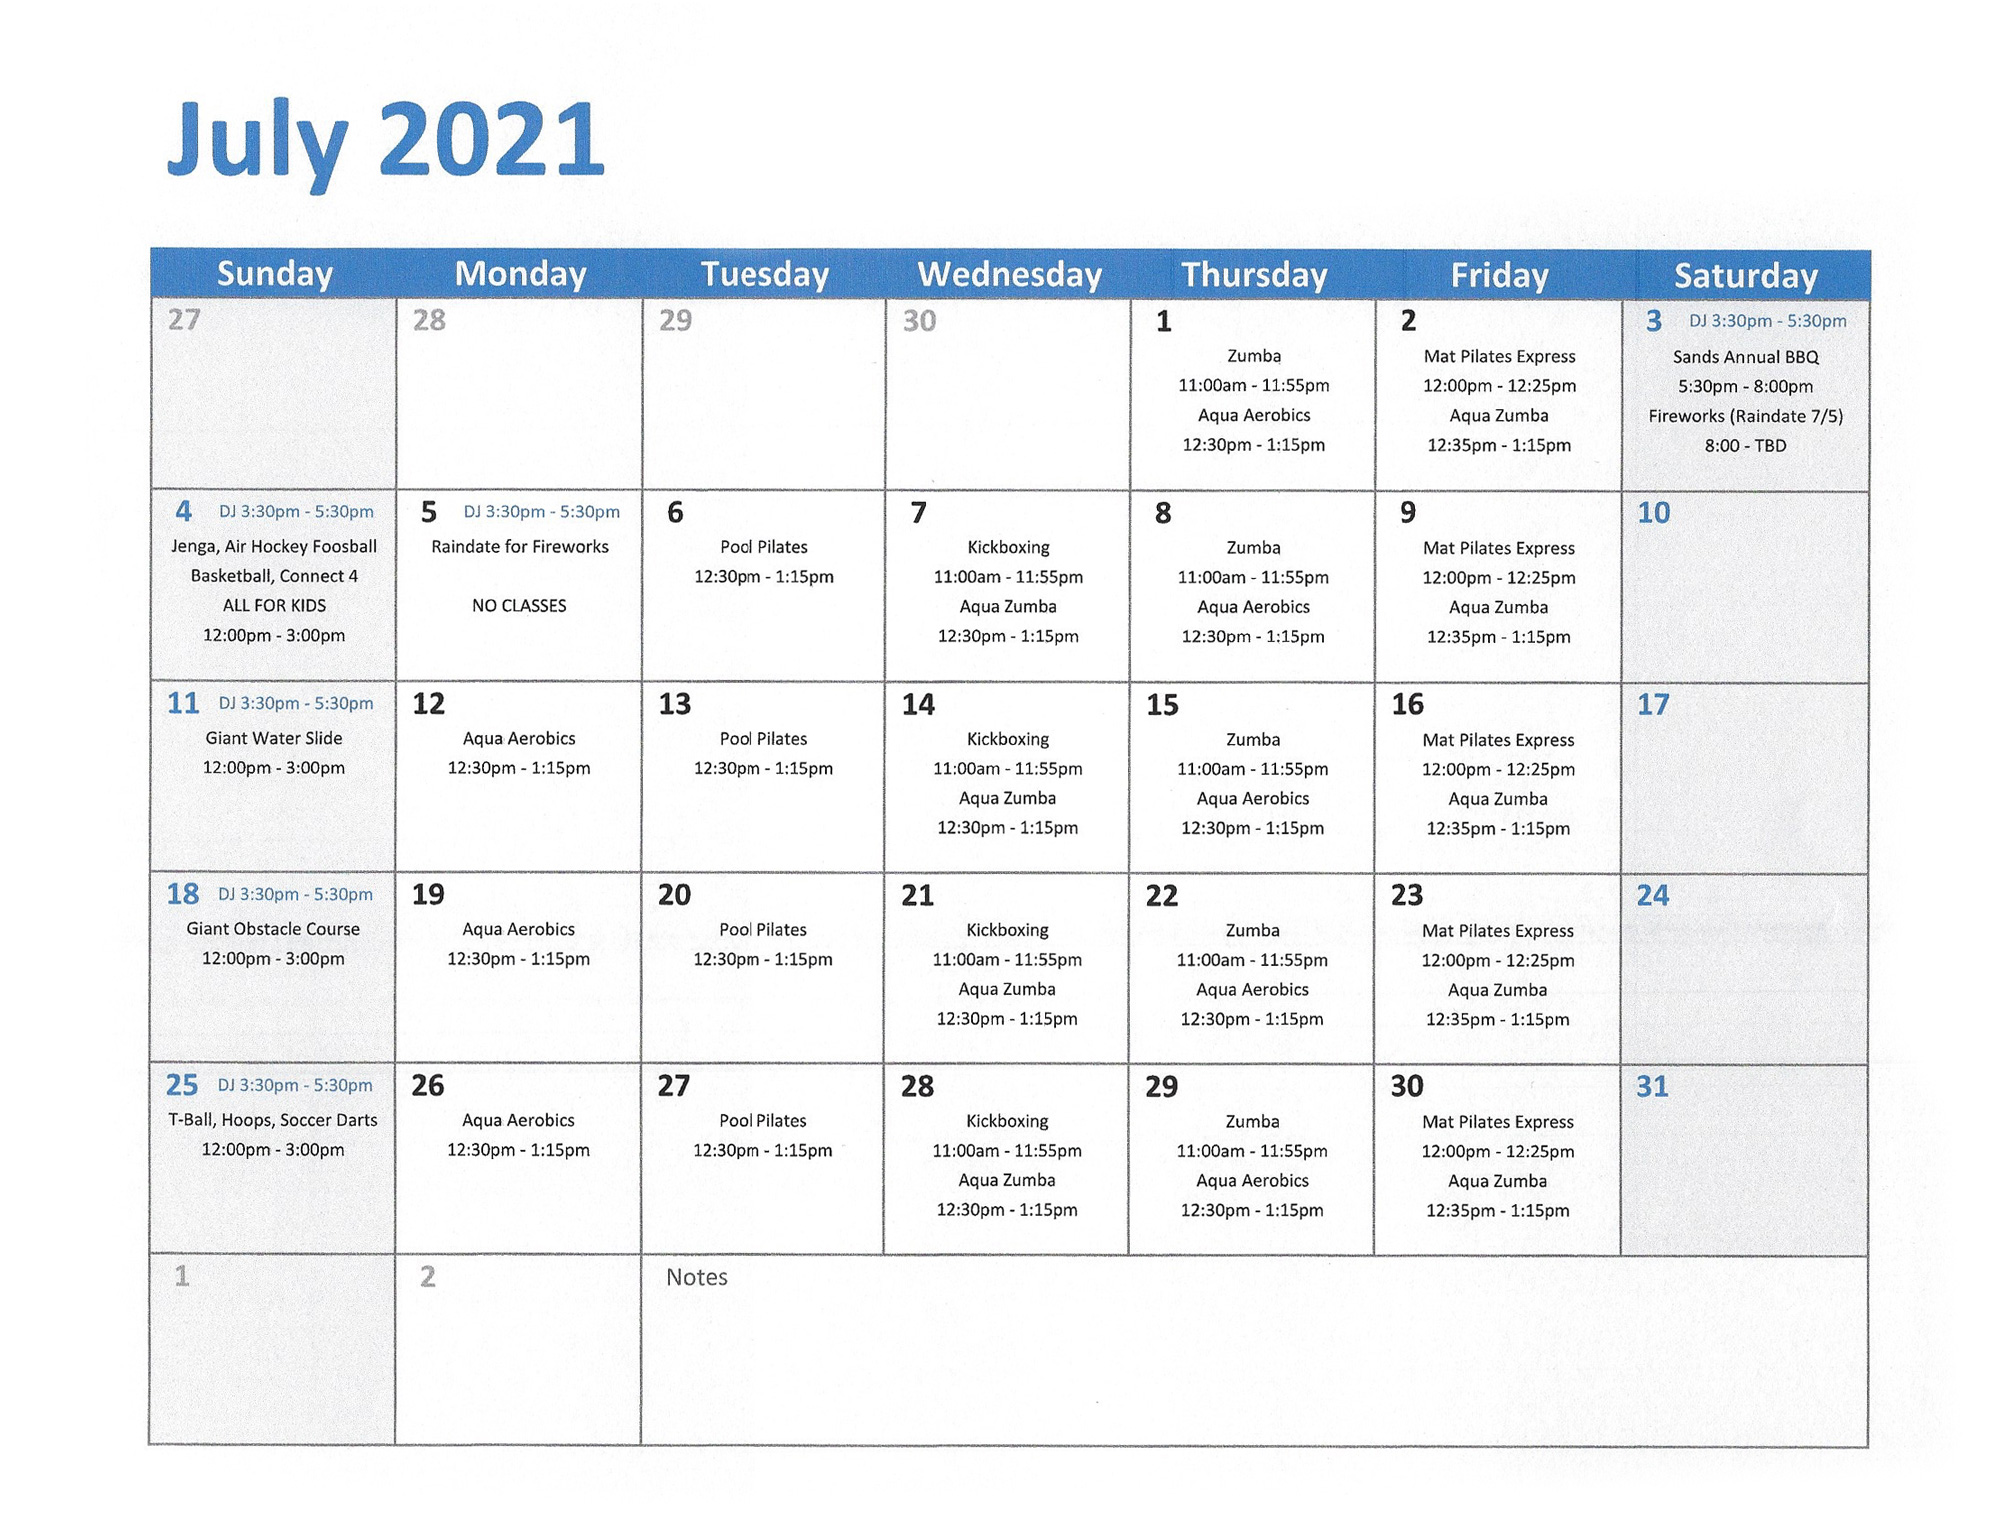 July-21-calendar-of-events